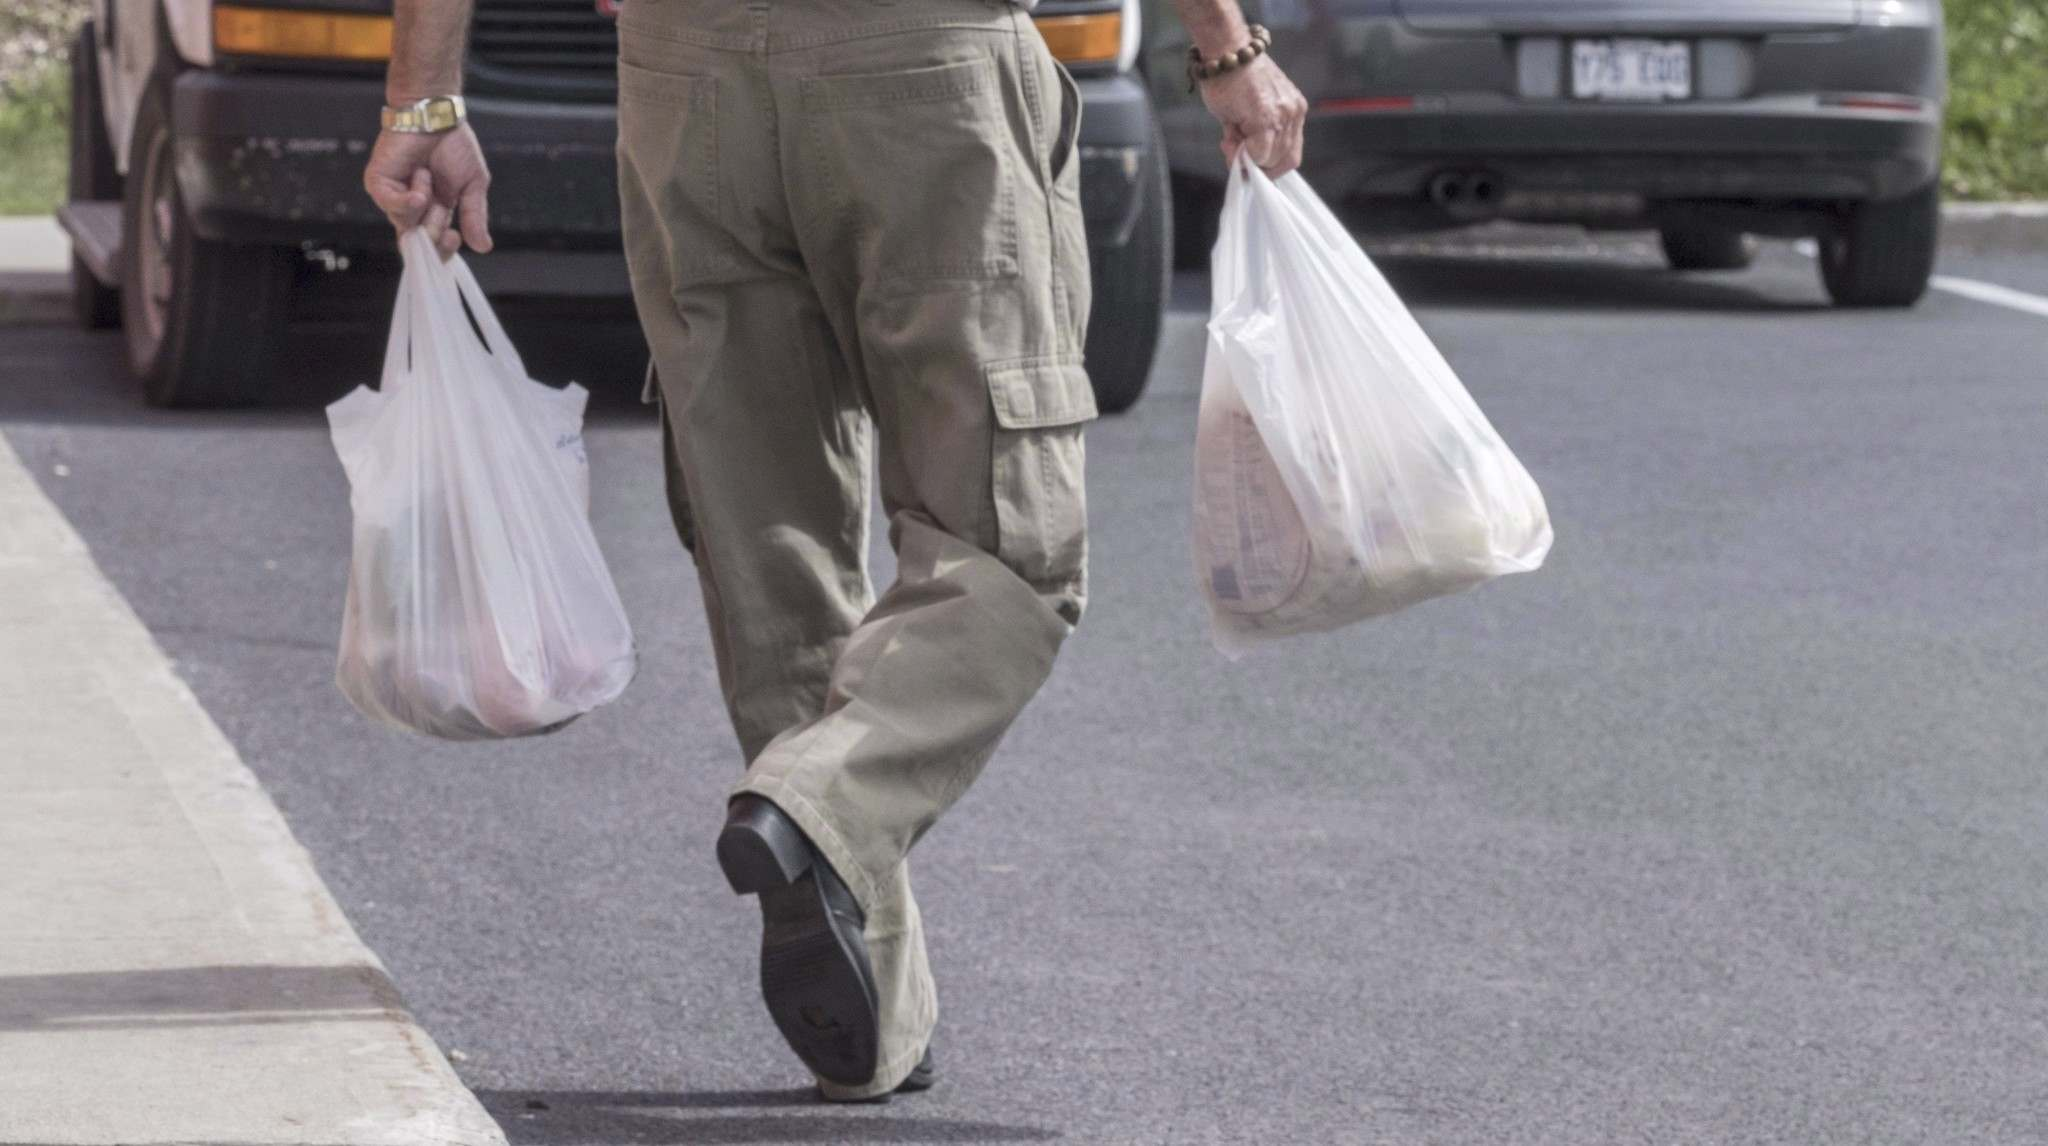 Plastic bags will no longer be available at any of Sobeys' 225 locations across the country by February. (Paul Chiasson / The Canadian Press)</p>